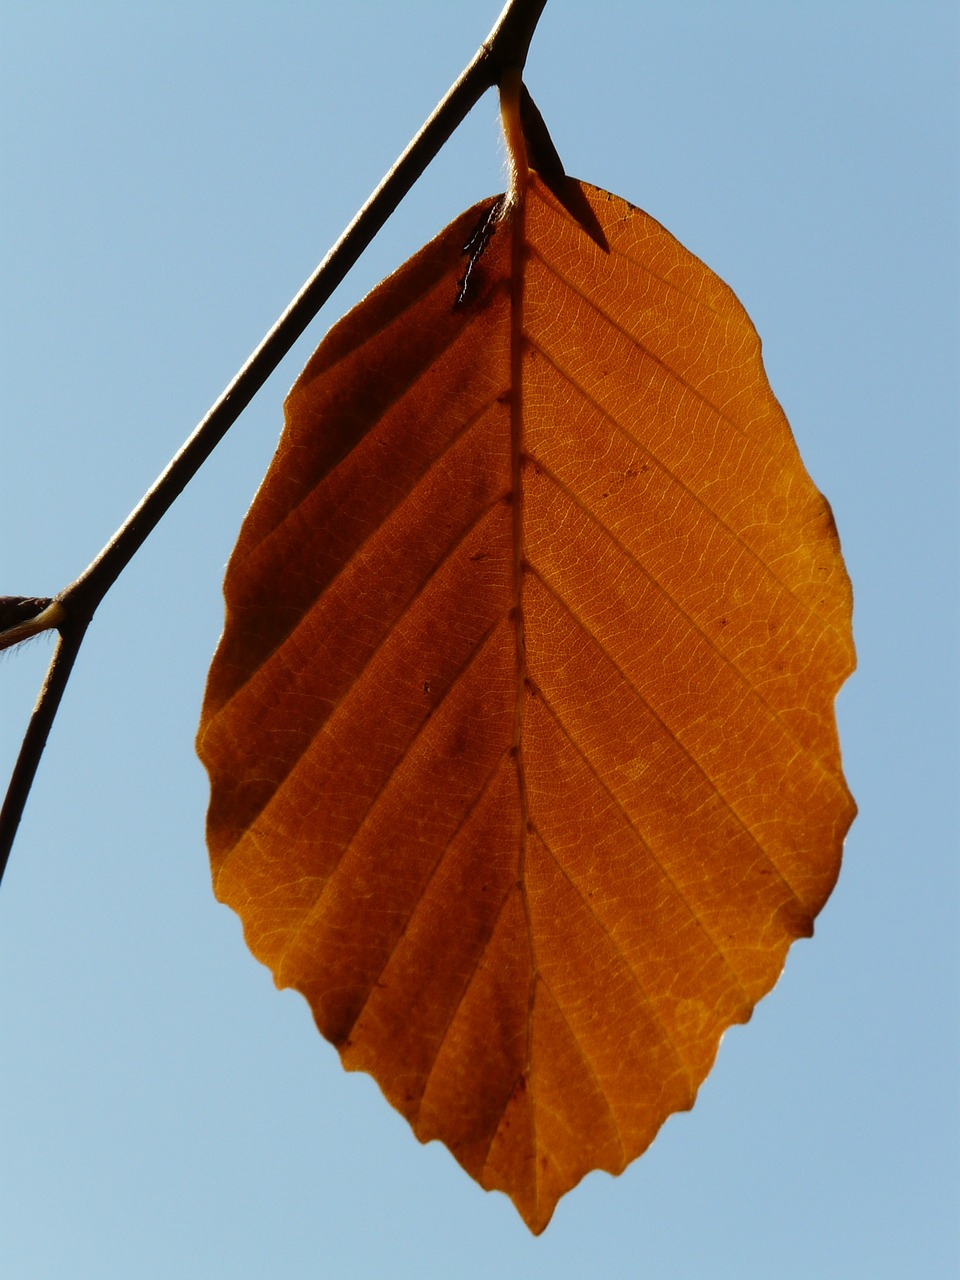 leaf loneliness alone free photo